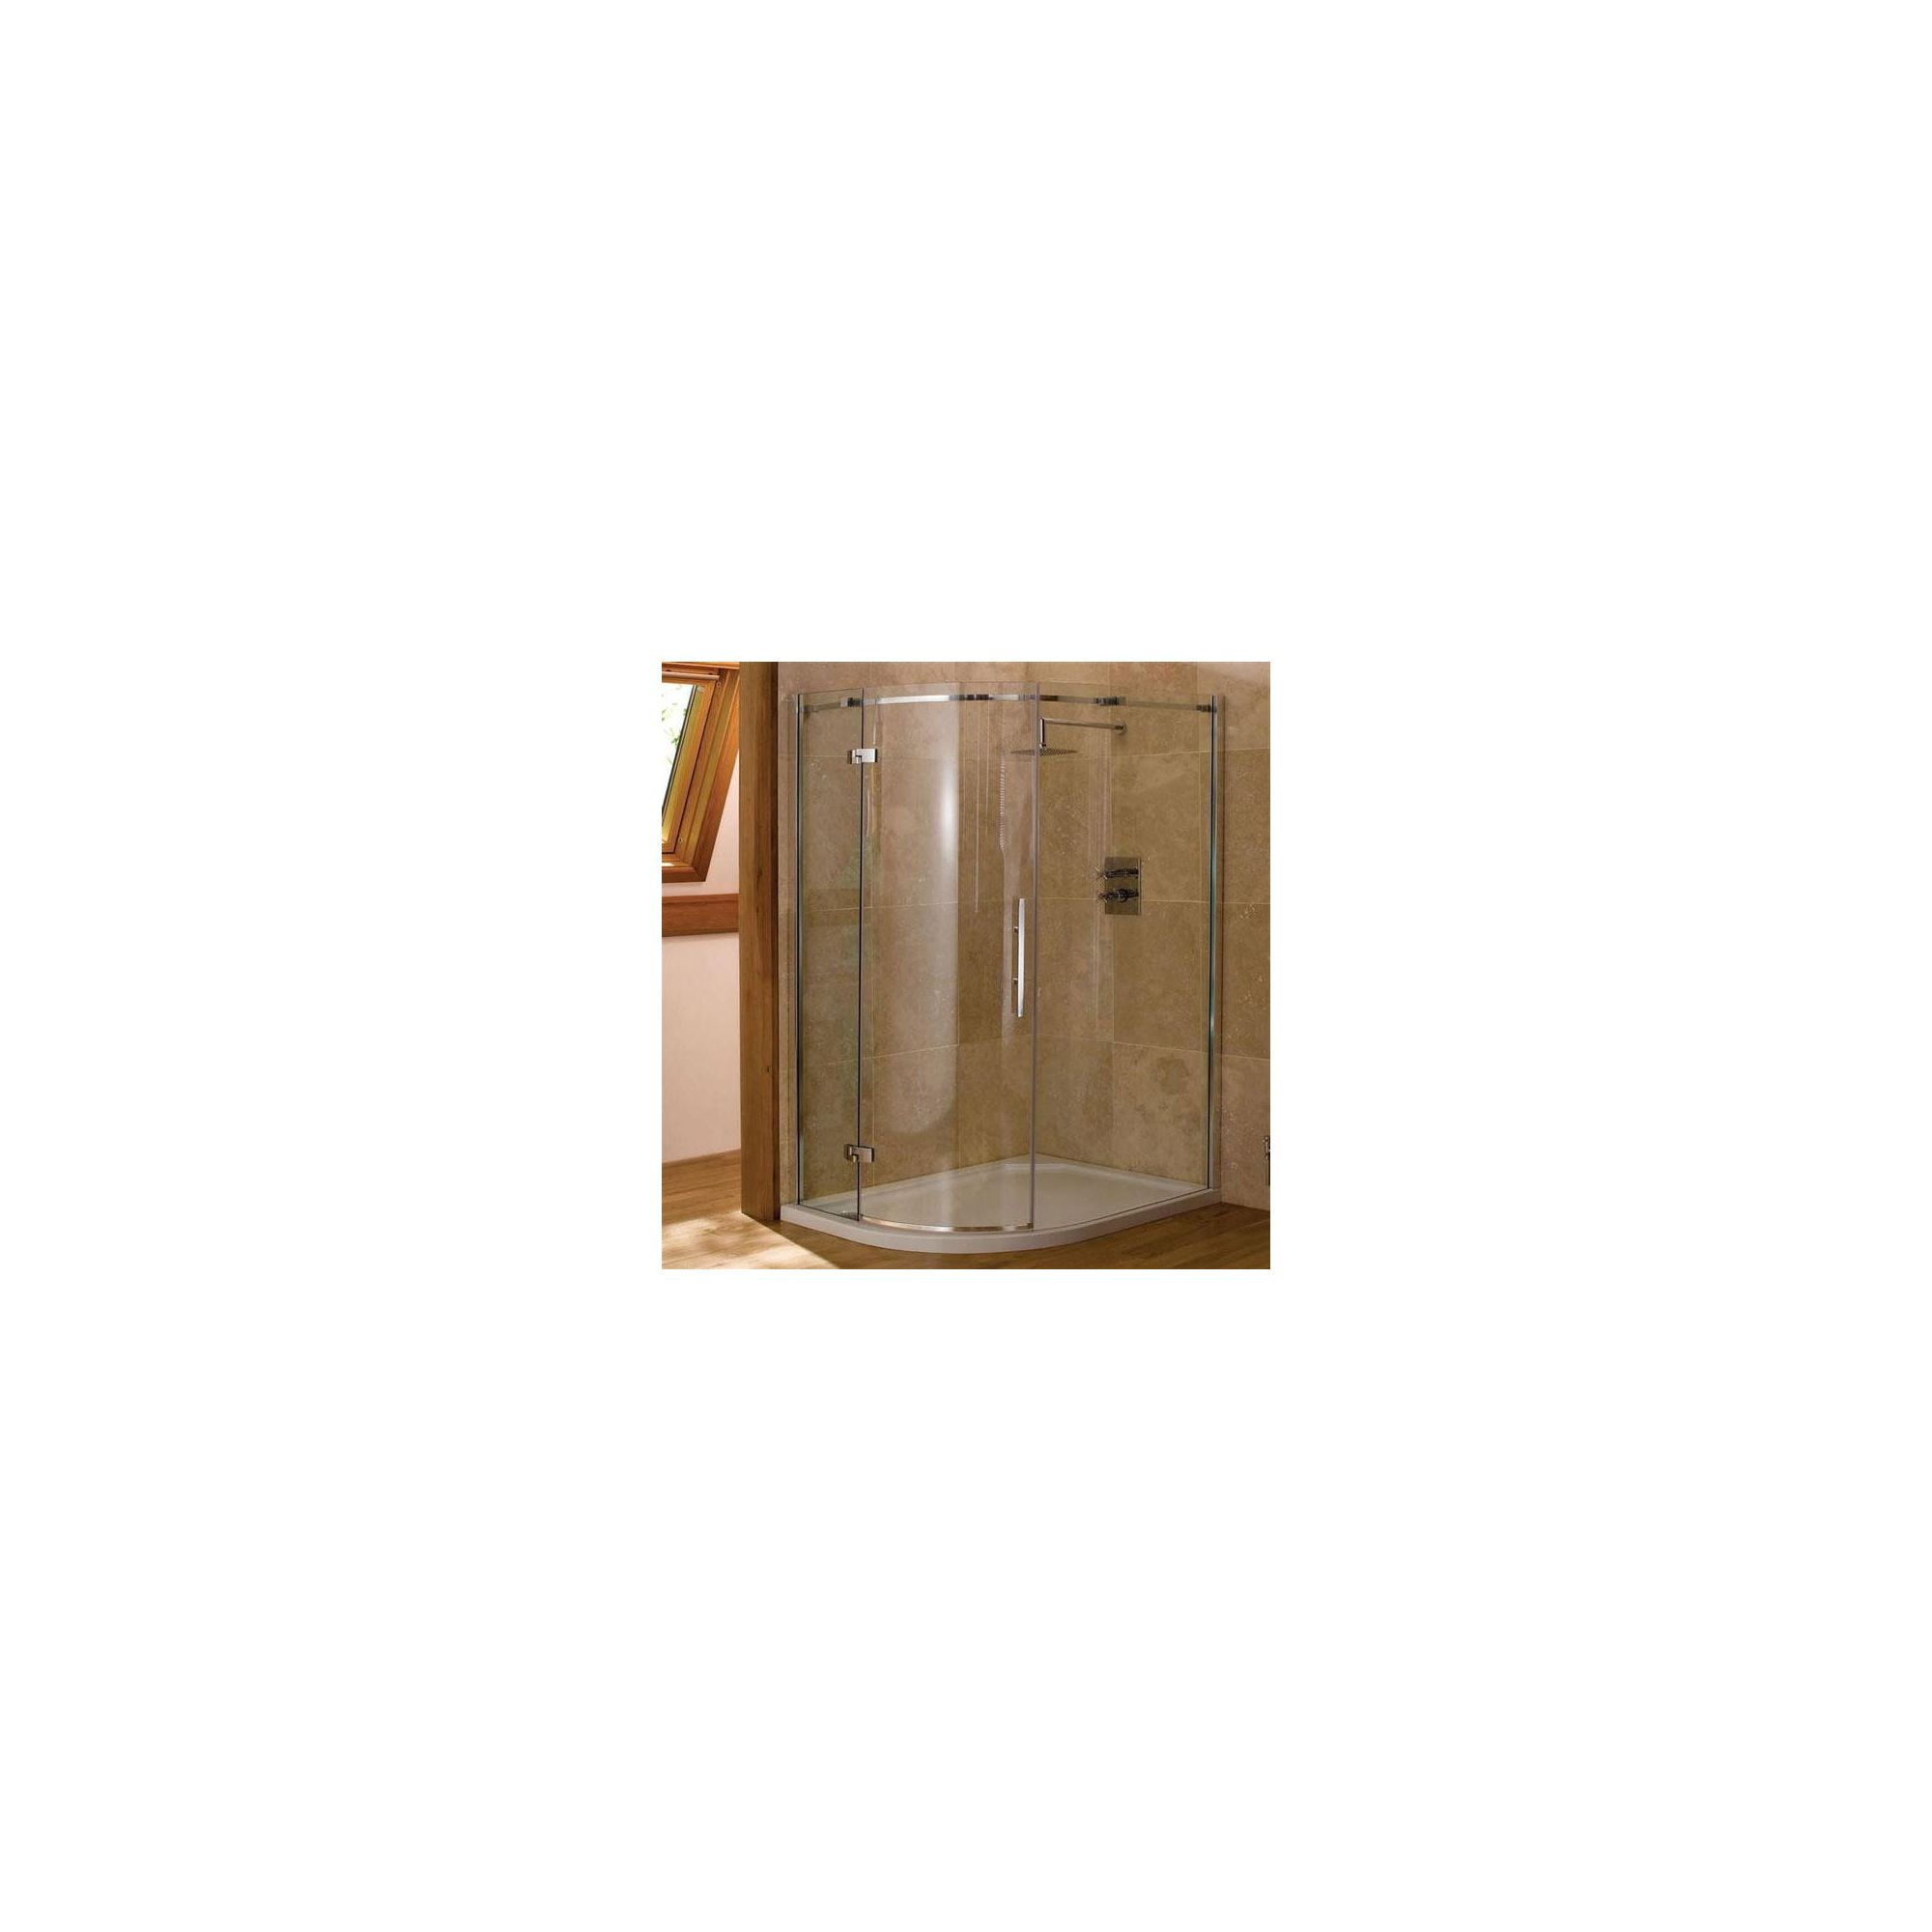 Merlyn Vivid Nine Offset Quadrant Shower Enclosure, 1200mm x 800mm, Right Handed, Low Profile Tray, 8mm Glass at Tesco Direct